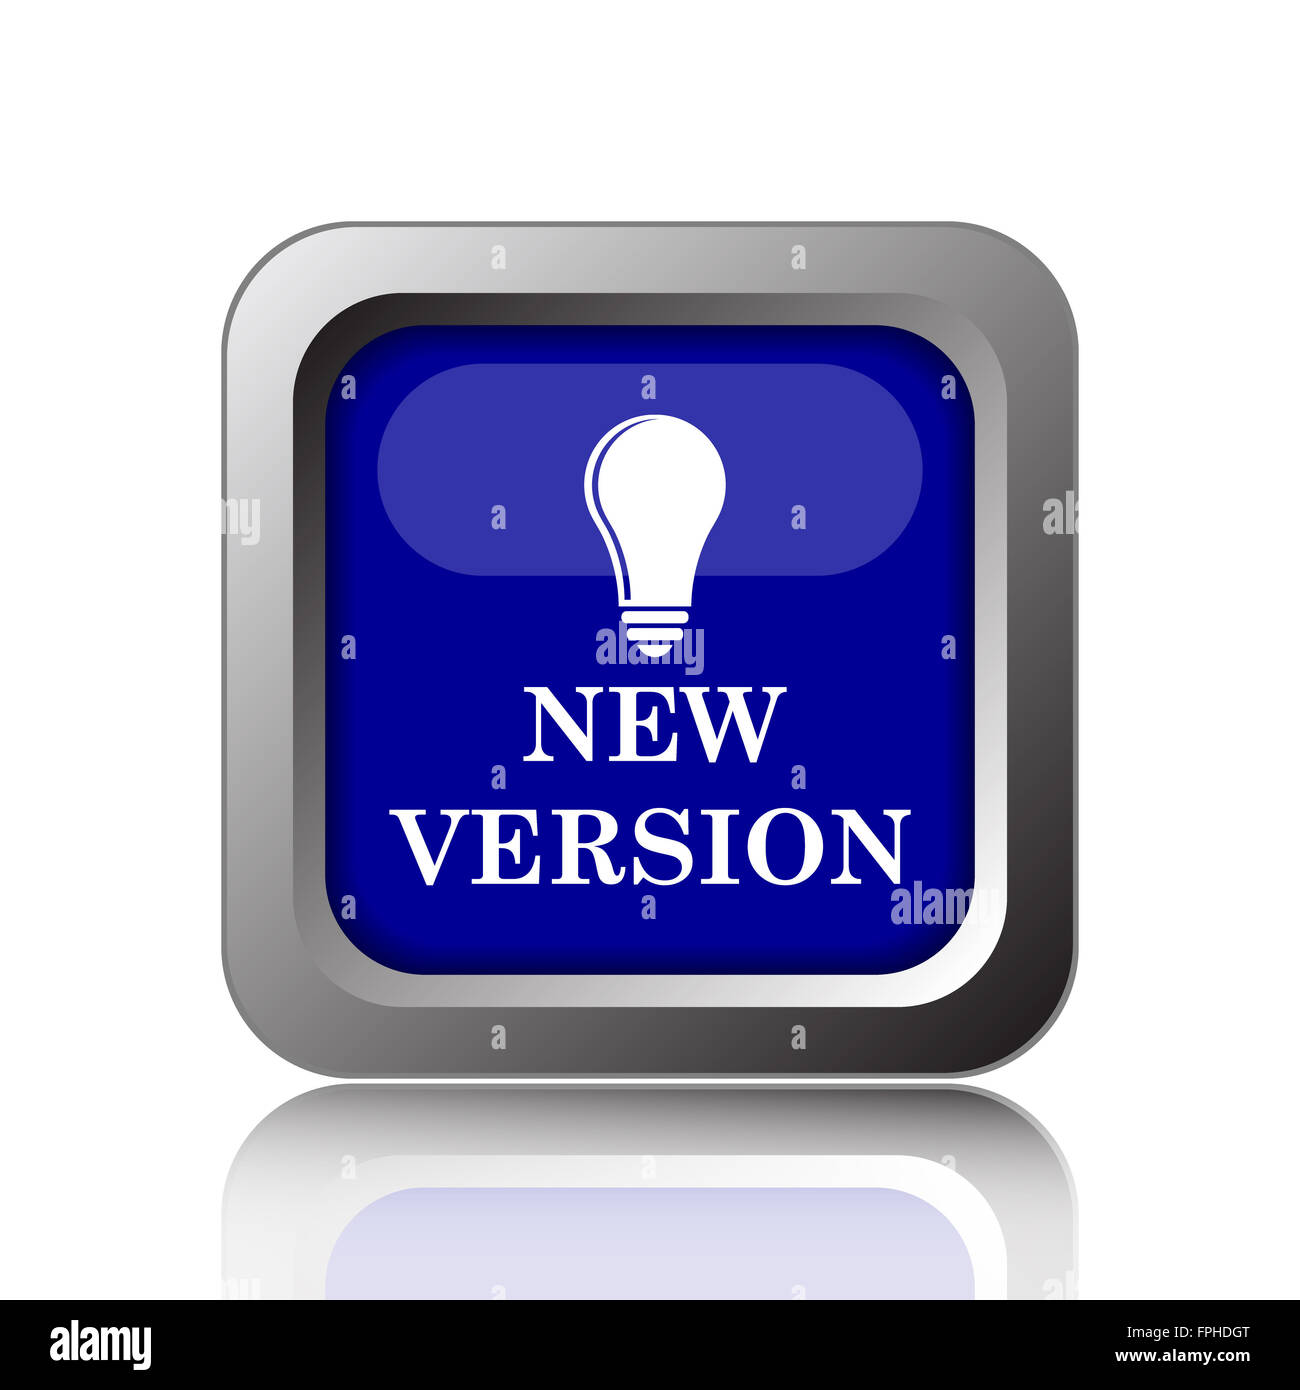 New version icon. Internet button on white background. - Stock Image